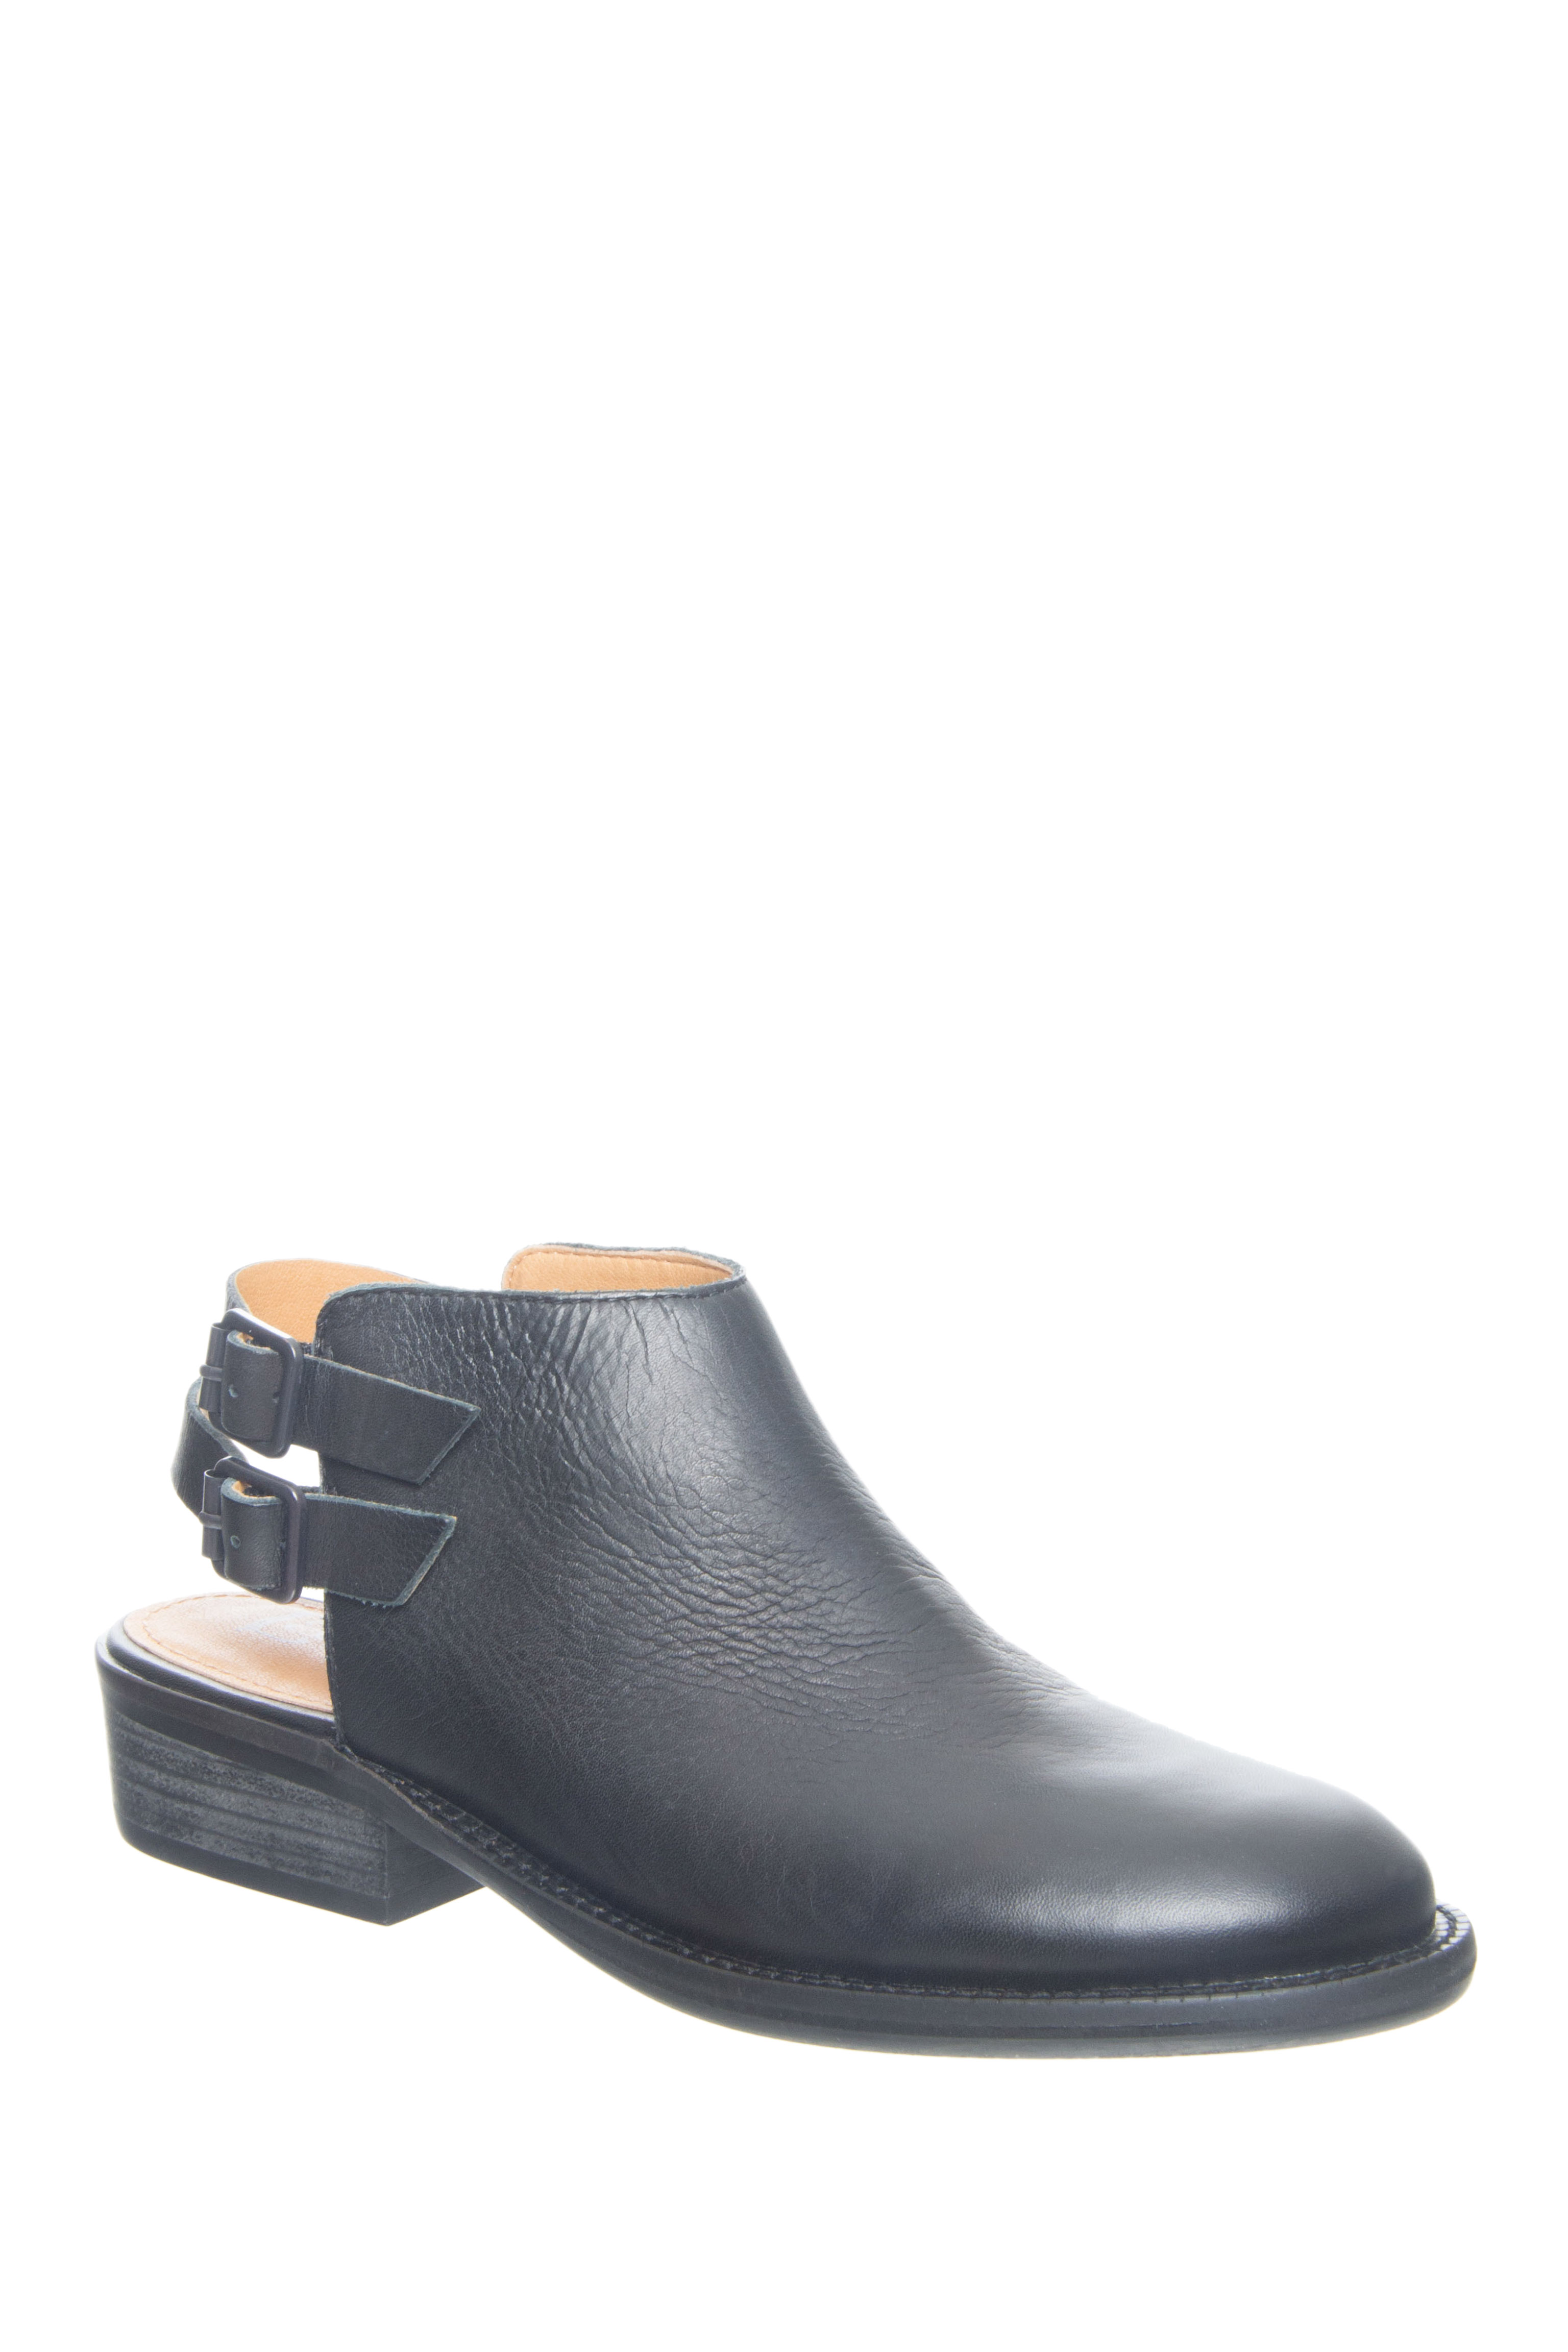 Latigo Cupcake Open Back Booties - Black